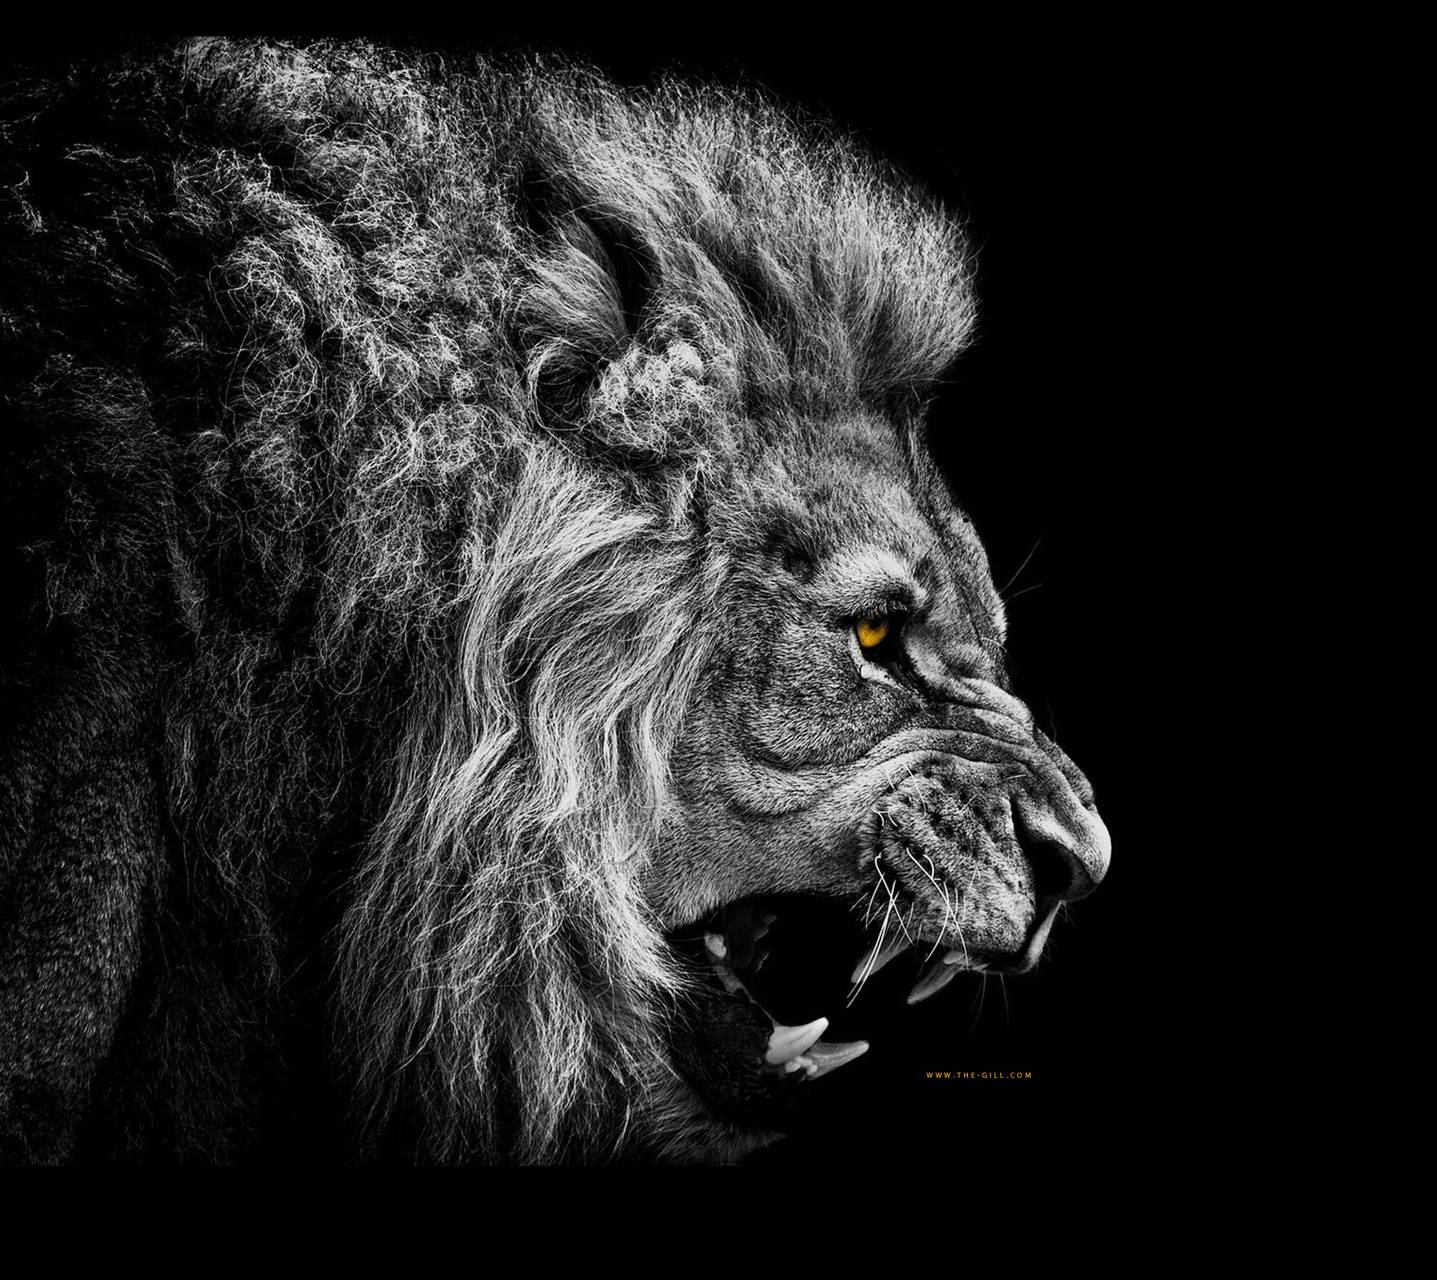 Lion - No Fear Wallpaper by gill123321 - 24